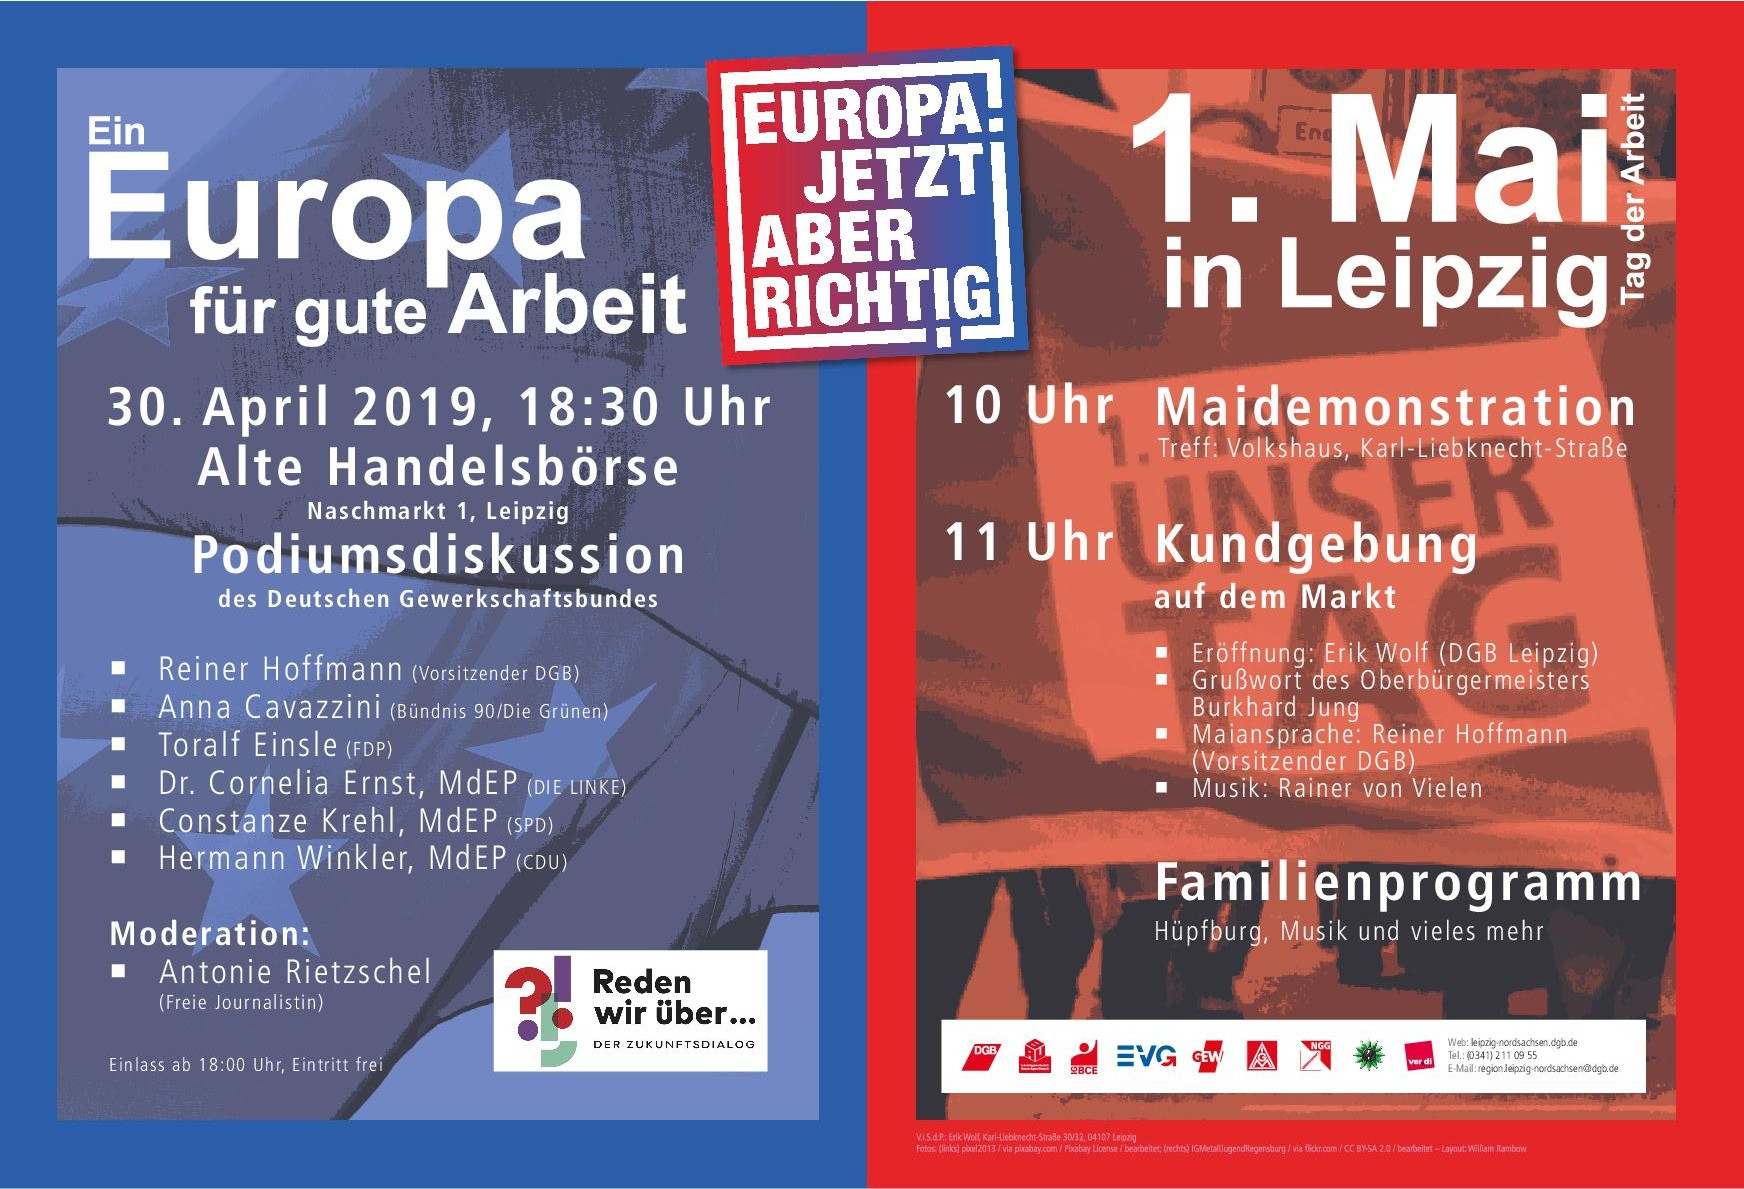 Podiumsdiskussion zur Europawahl am 30. April 2019 um 18:30 in der alten Handelsbörse in Leipzig.  Demonstration zum 1. Mai um 10 Uhr am Volkshaus in Leipzig.  Kundgebung zum 1. Mai in Leipzig um 11 Uhr auf dem Markt.